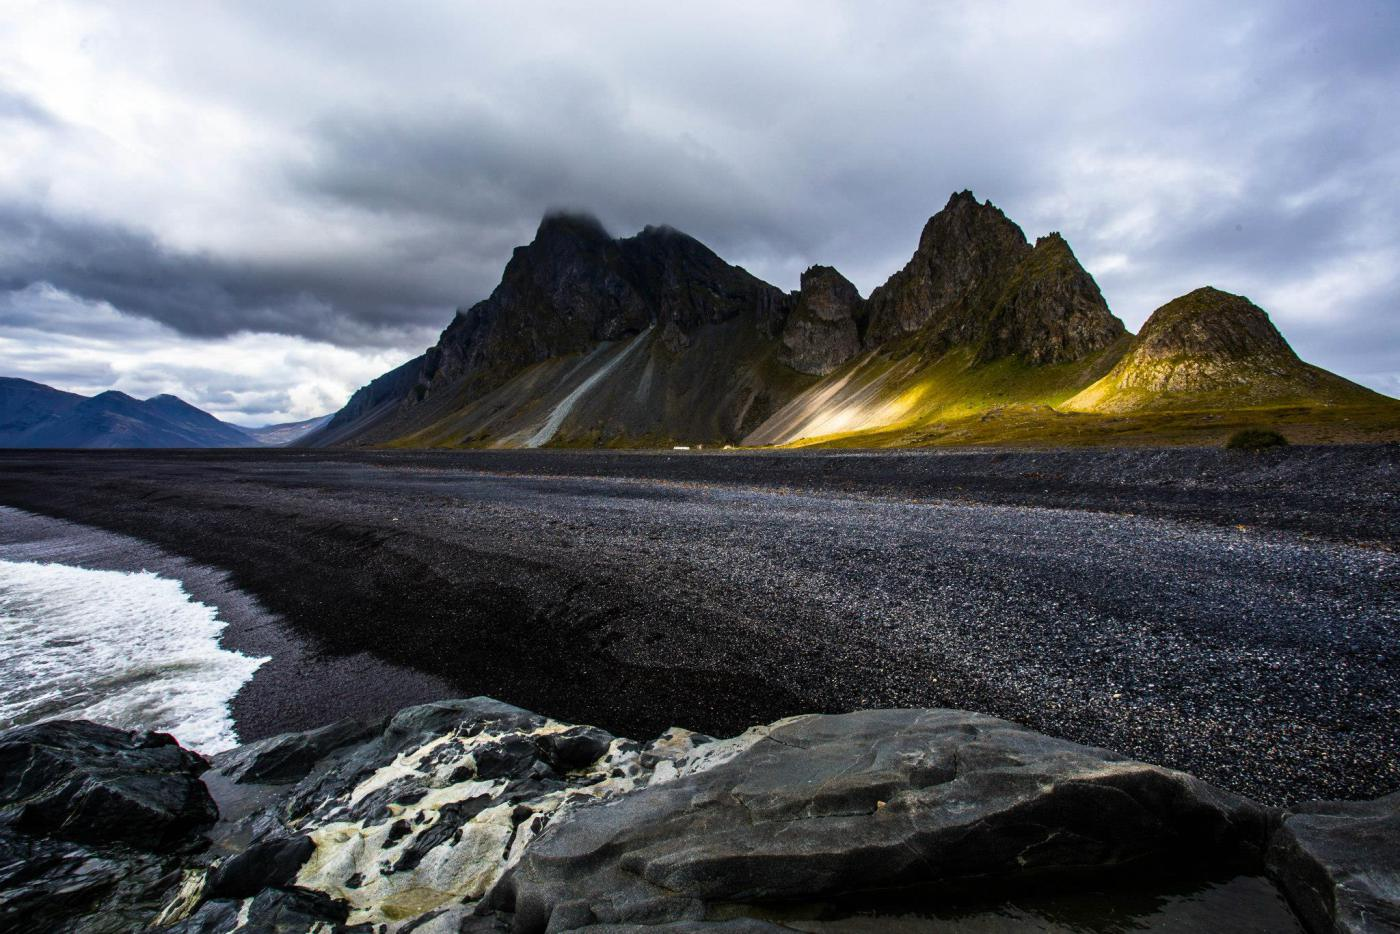 west fjords dean chytraus iceland thisworldexists this world exists